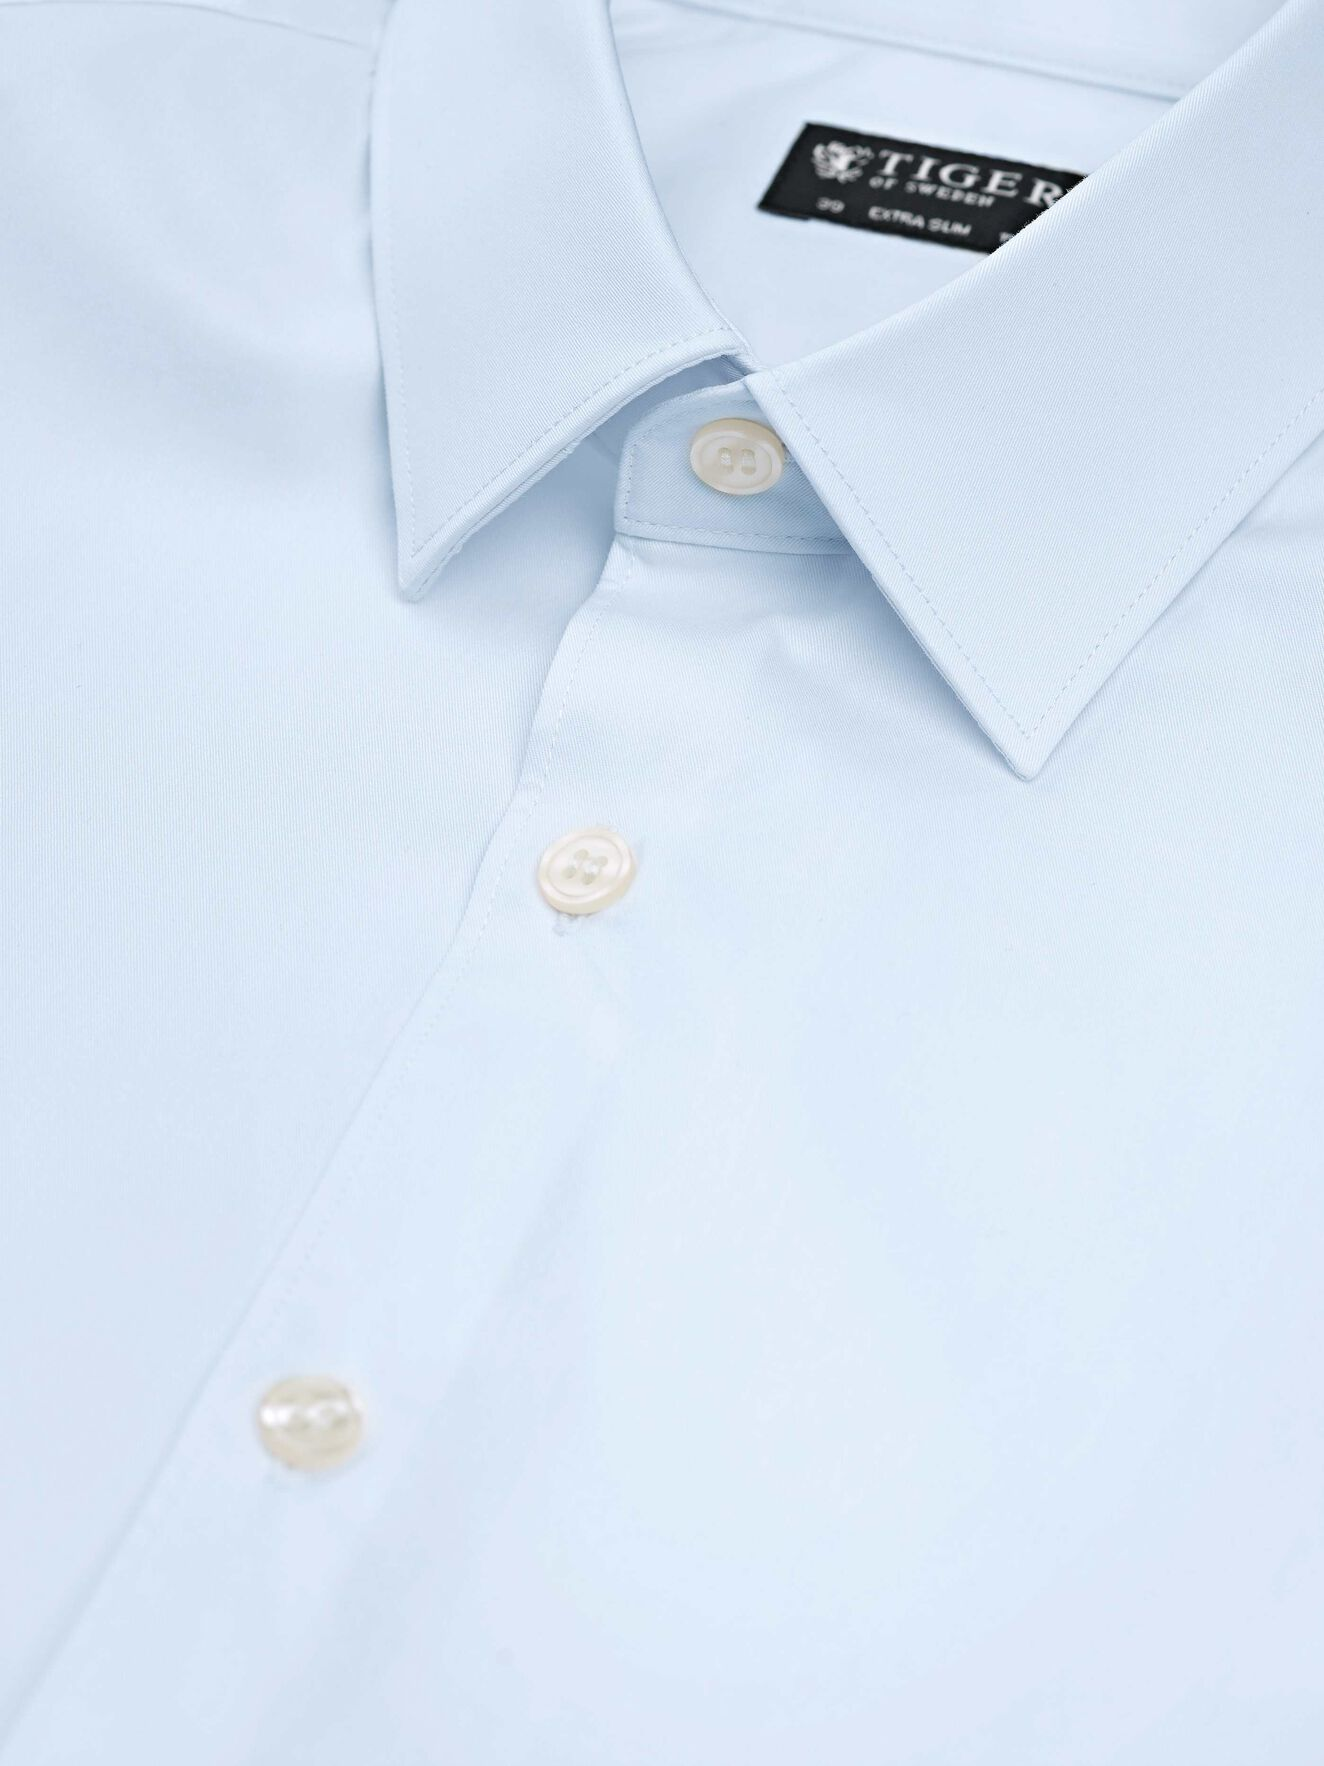 Filbrodie Shirt in Pale blue from Tiger of Sweden